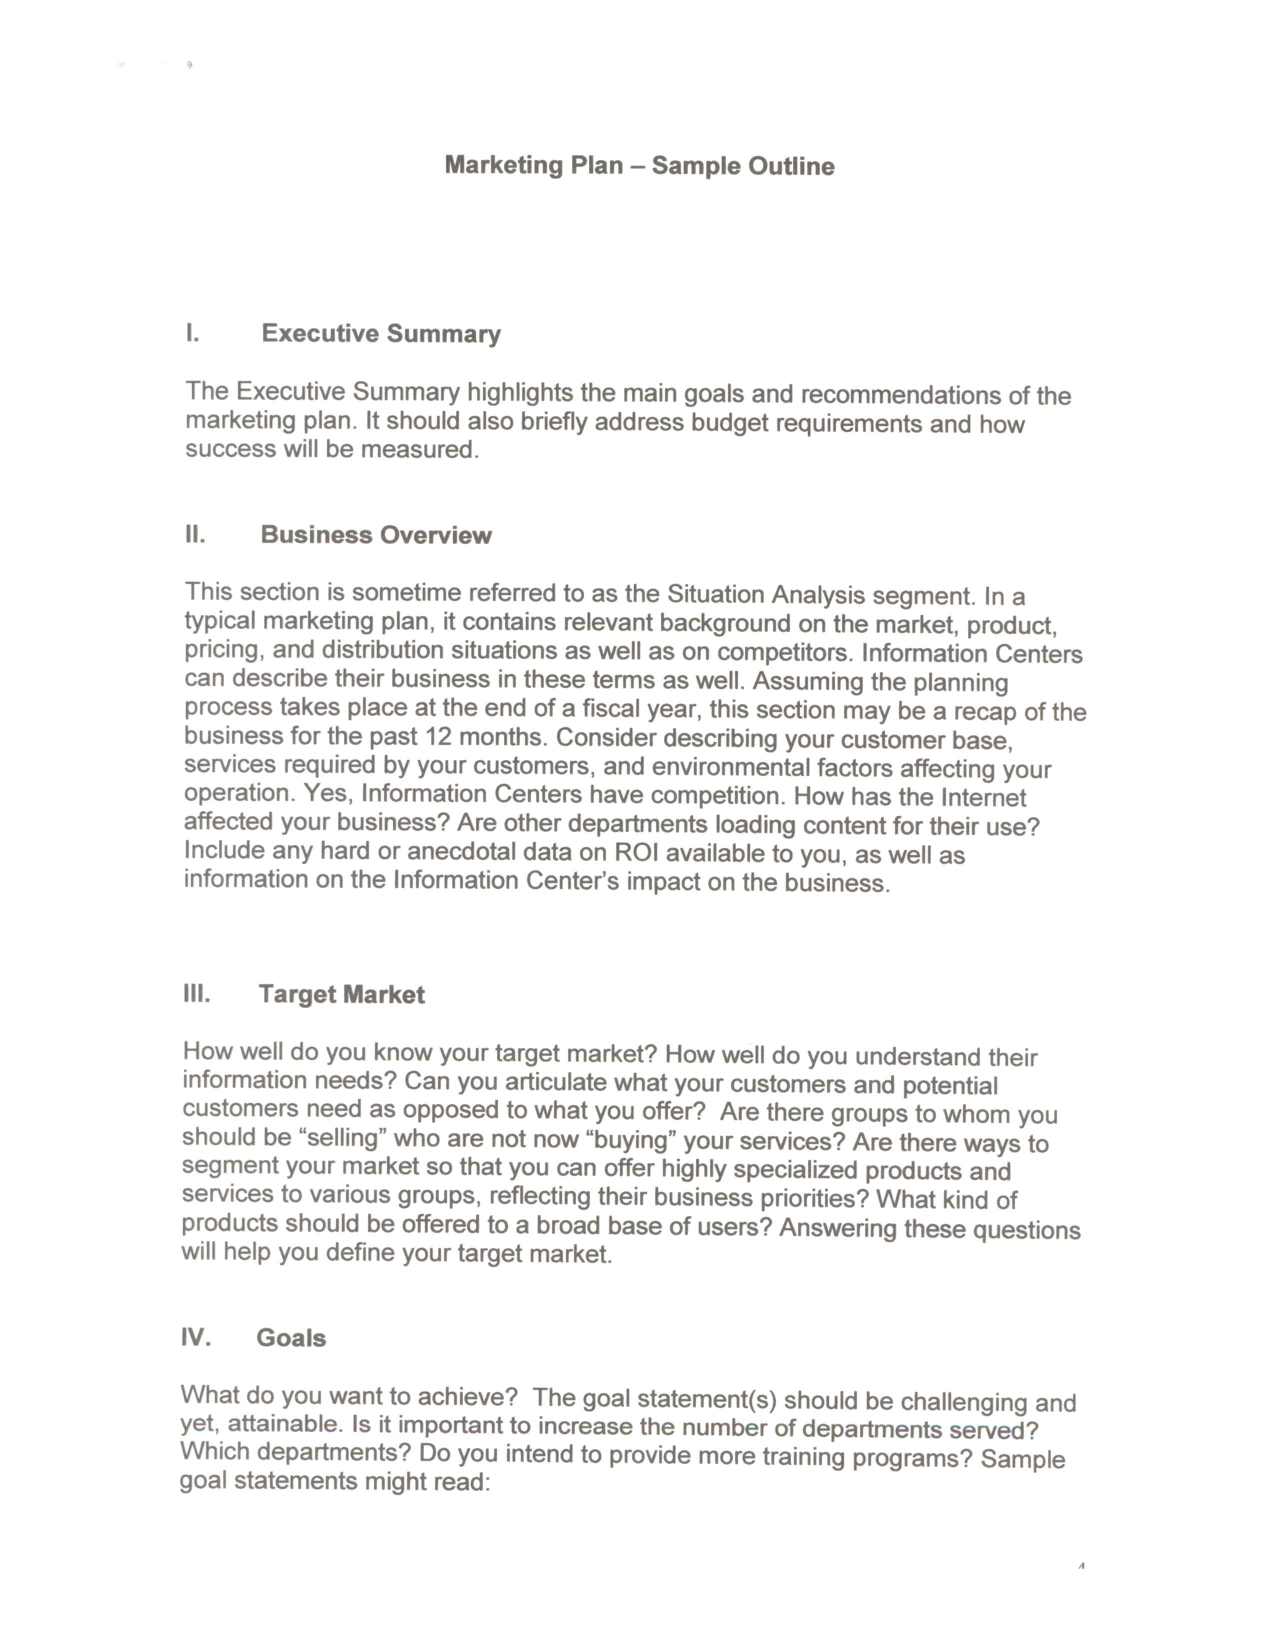 013 Executive Summary Research Paper Example Marketing Plan 384040 Unforgettable Full